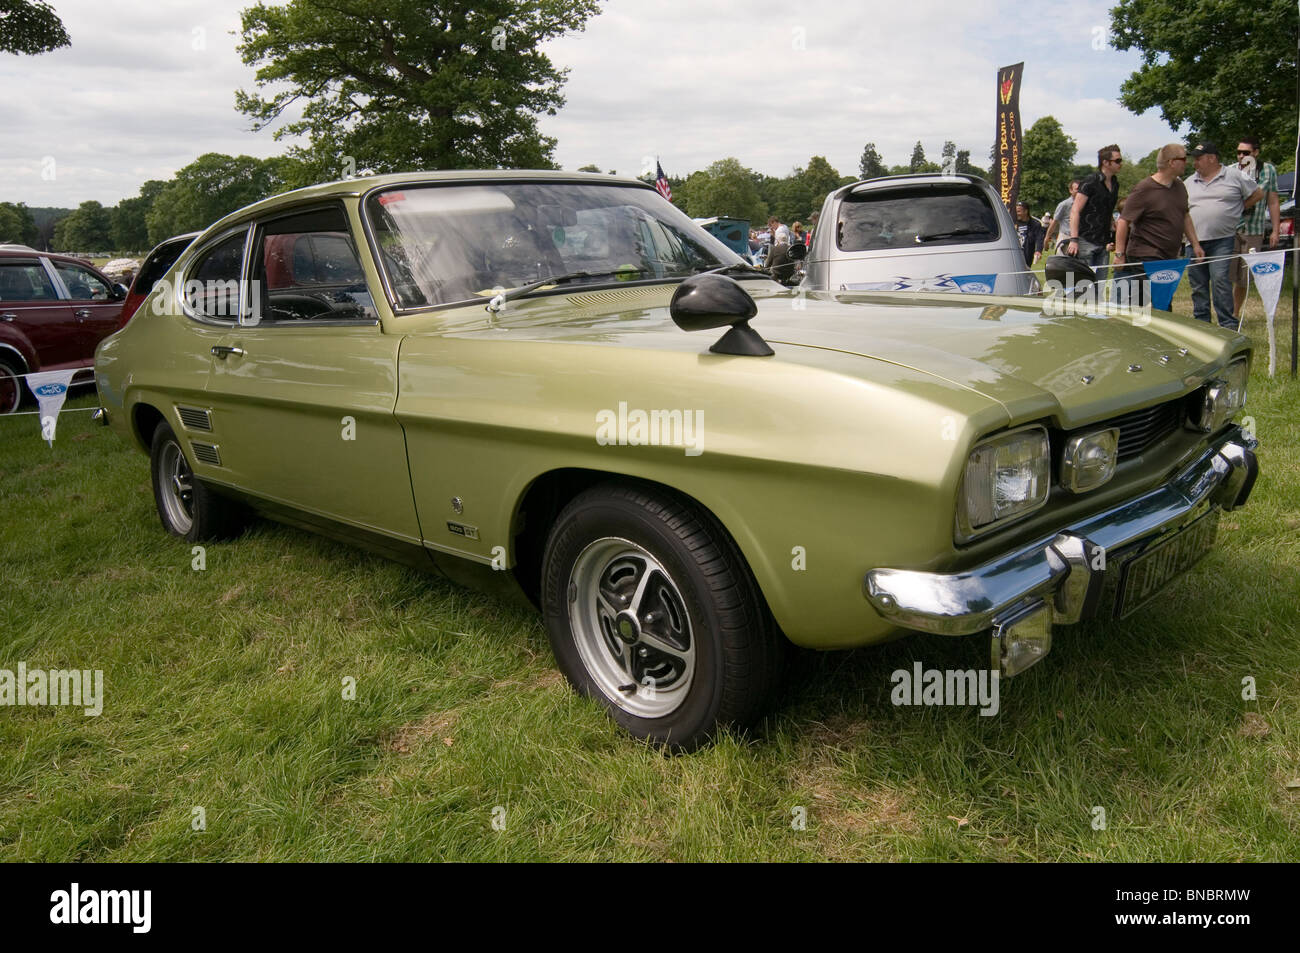 Stock Photo - ford capri mk1 mark 1 two classic car cars show shows showing competition old vintage restored restoration restoring hobby hobbi & ford capri mk1 mark 1 two classic car cars show shows showing ... markmcfarlin.com